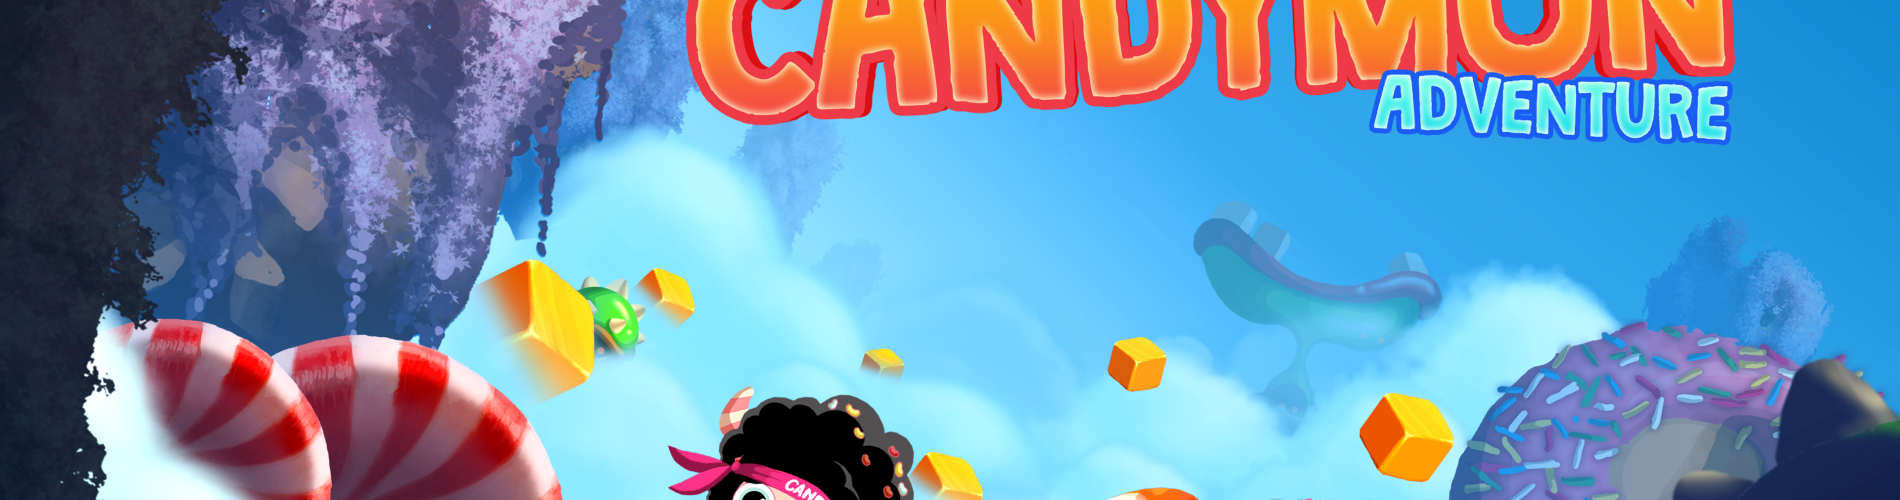 Candymon review: sugar crazed monsters unleashed